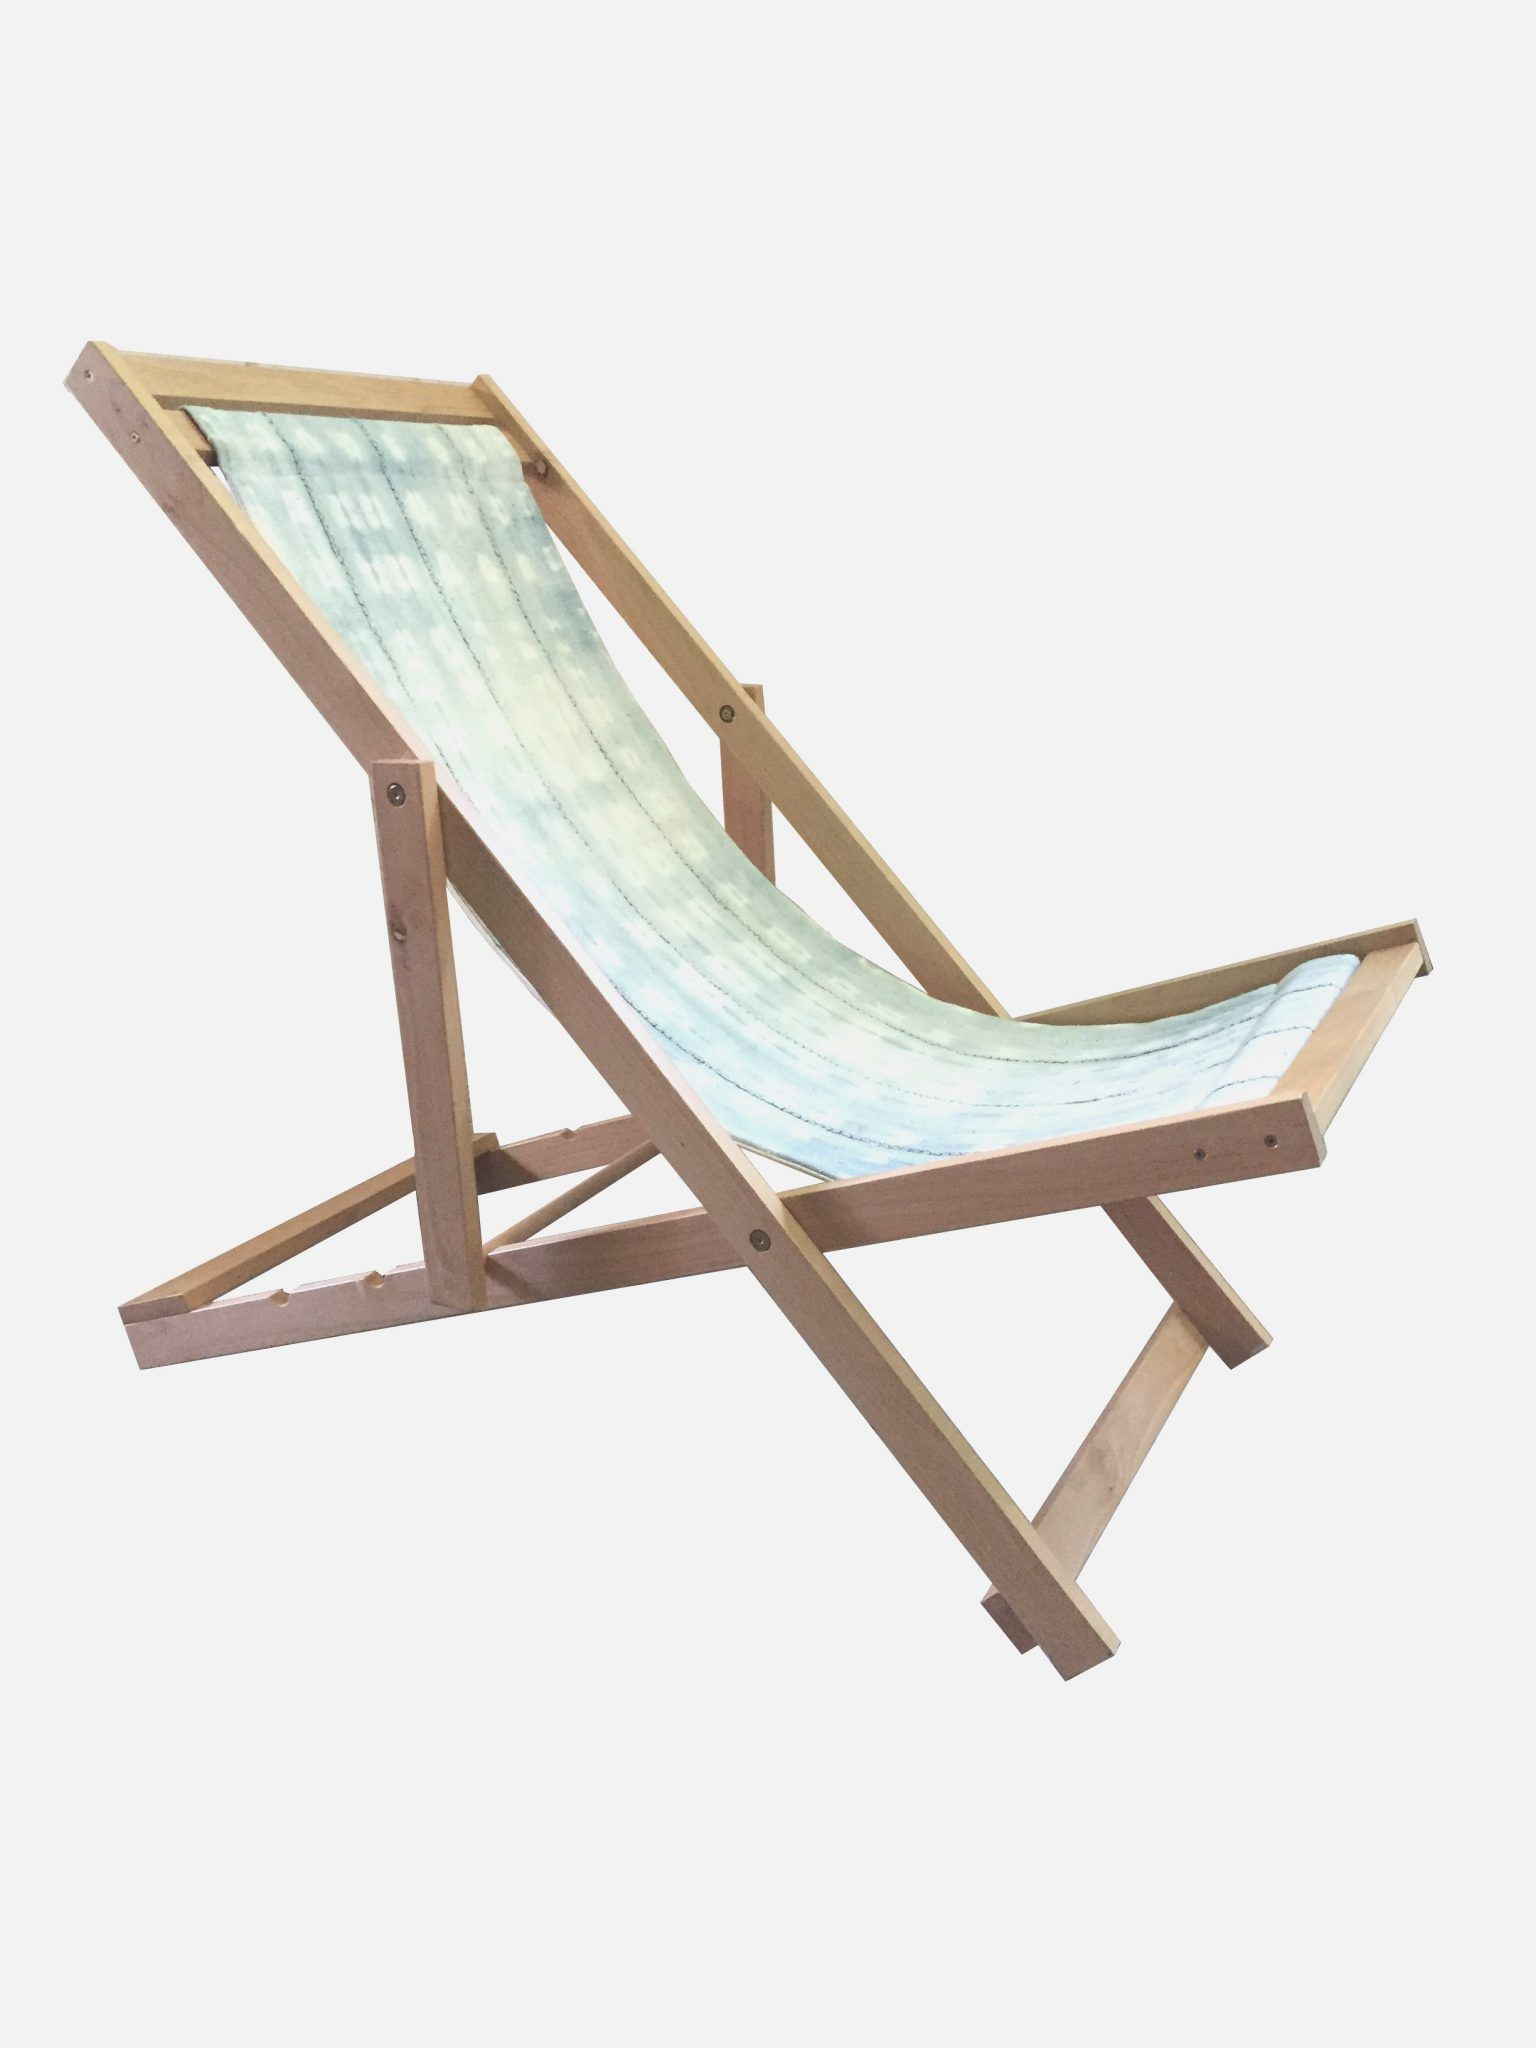 wholesale folding chairs affordable accent cloth canvas canopy garden lawn